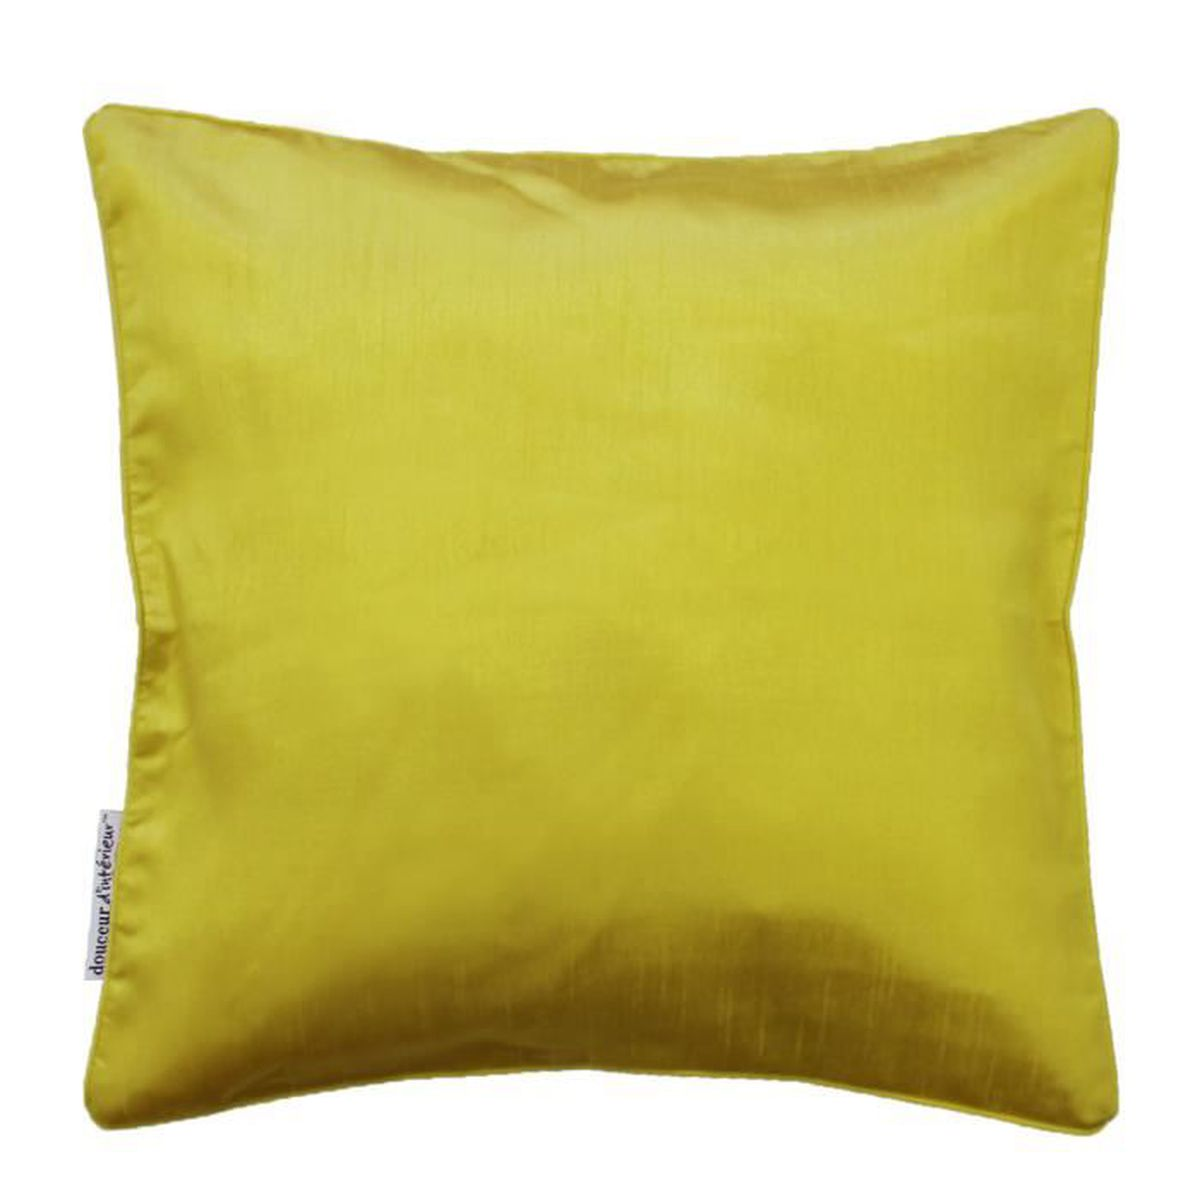 Housse coussin 40x40 verts achat vente housse coussin for Housse coussin 40x40